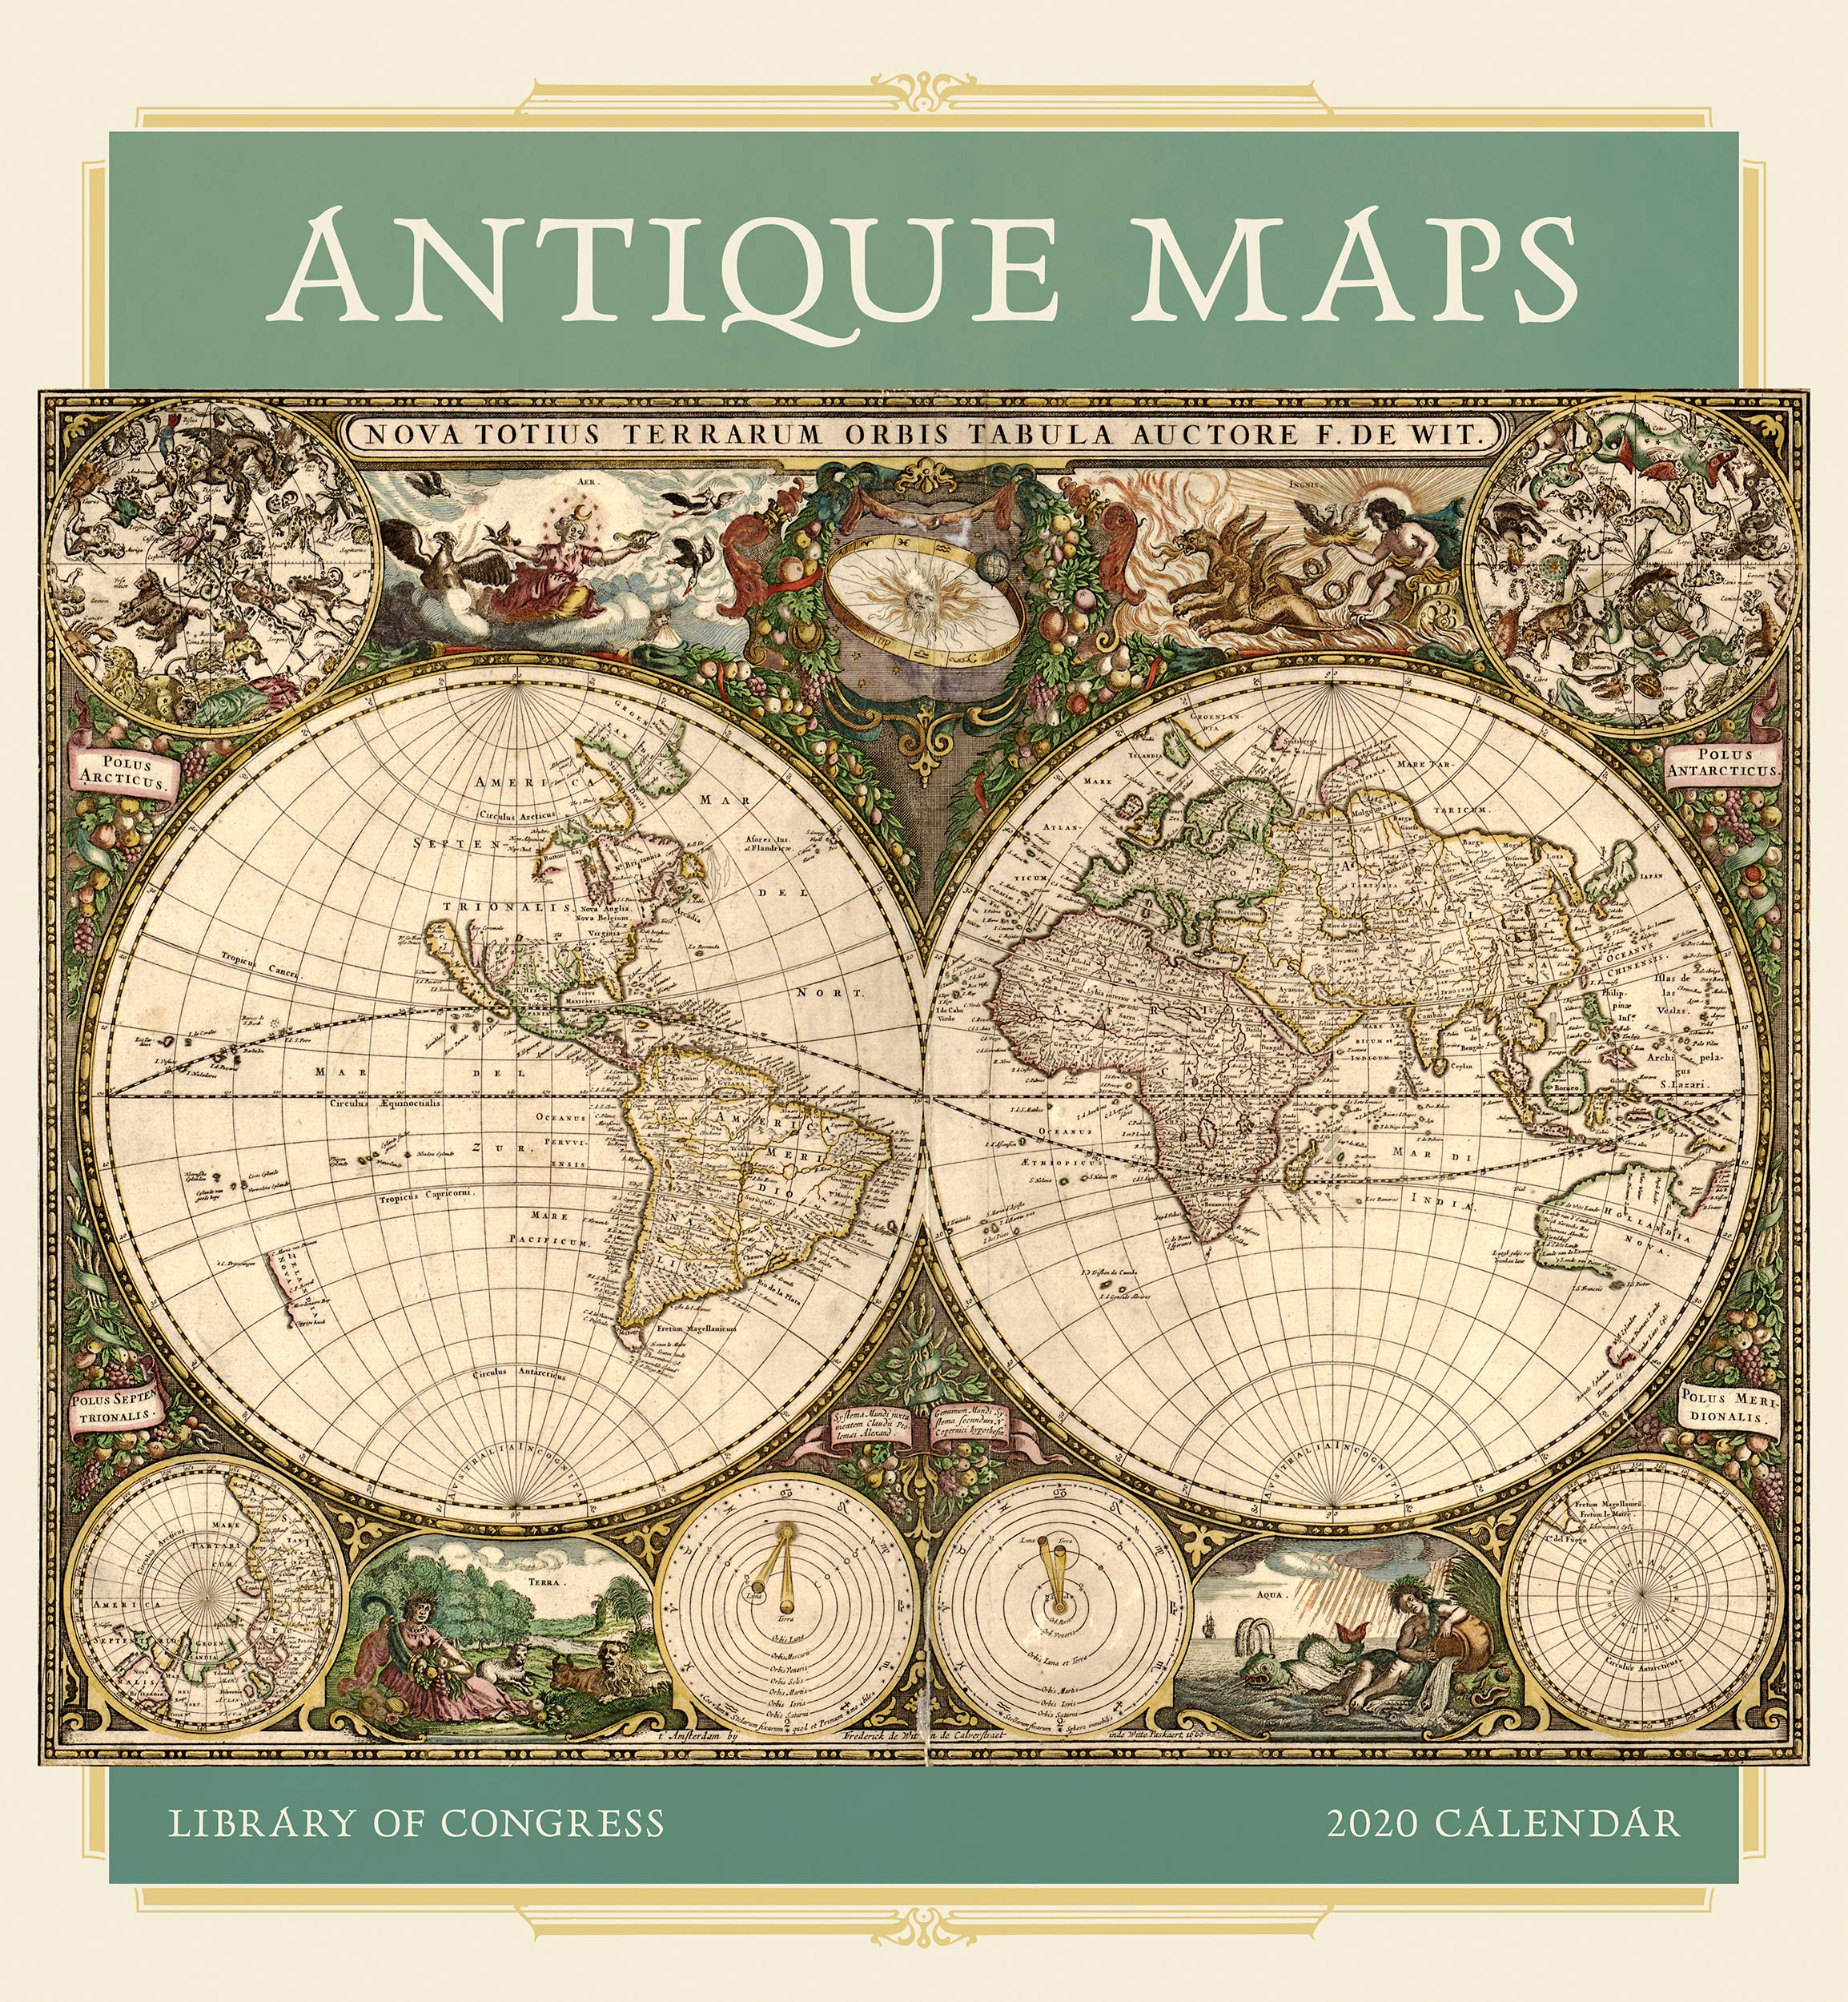 Antique Maps 2020 Wall Calendar by Pomegranate